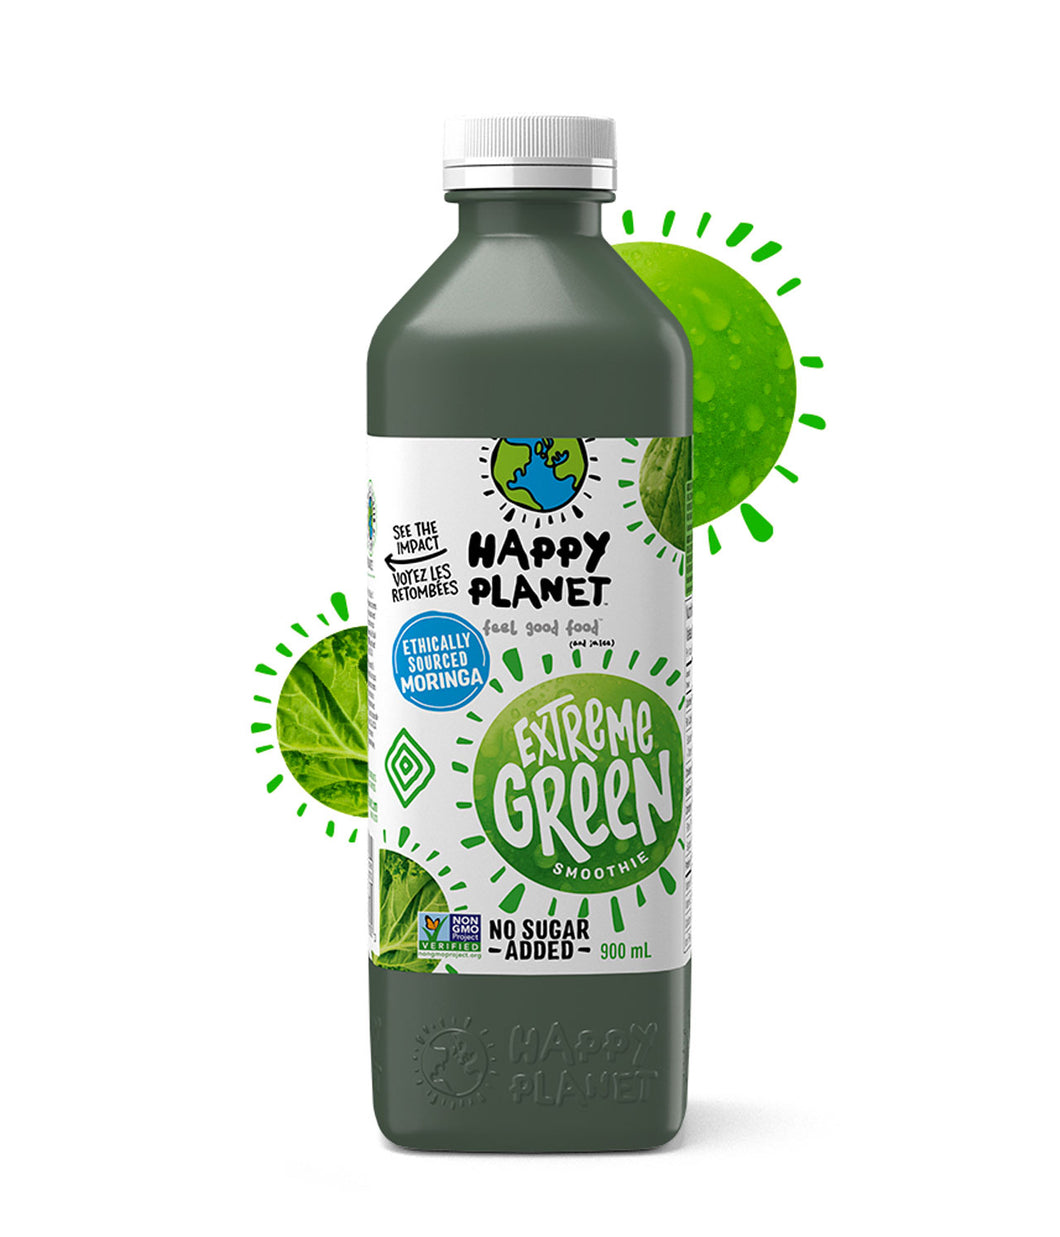 Happy Planet Extreme Green Smoothie (900ml)